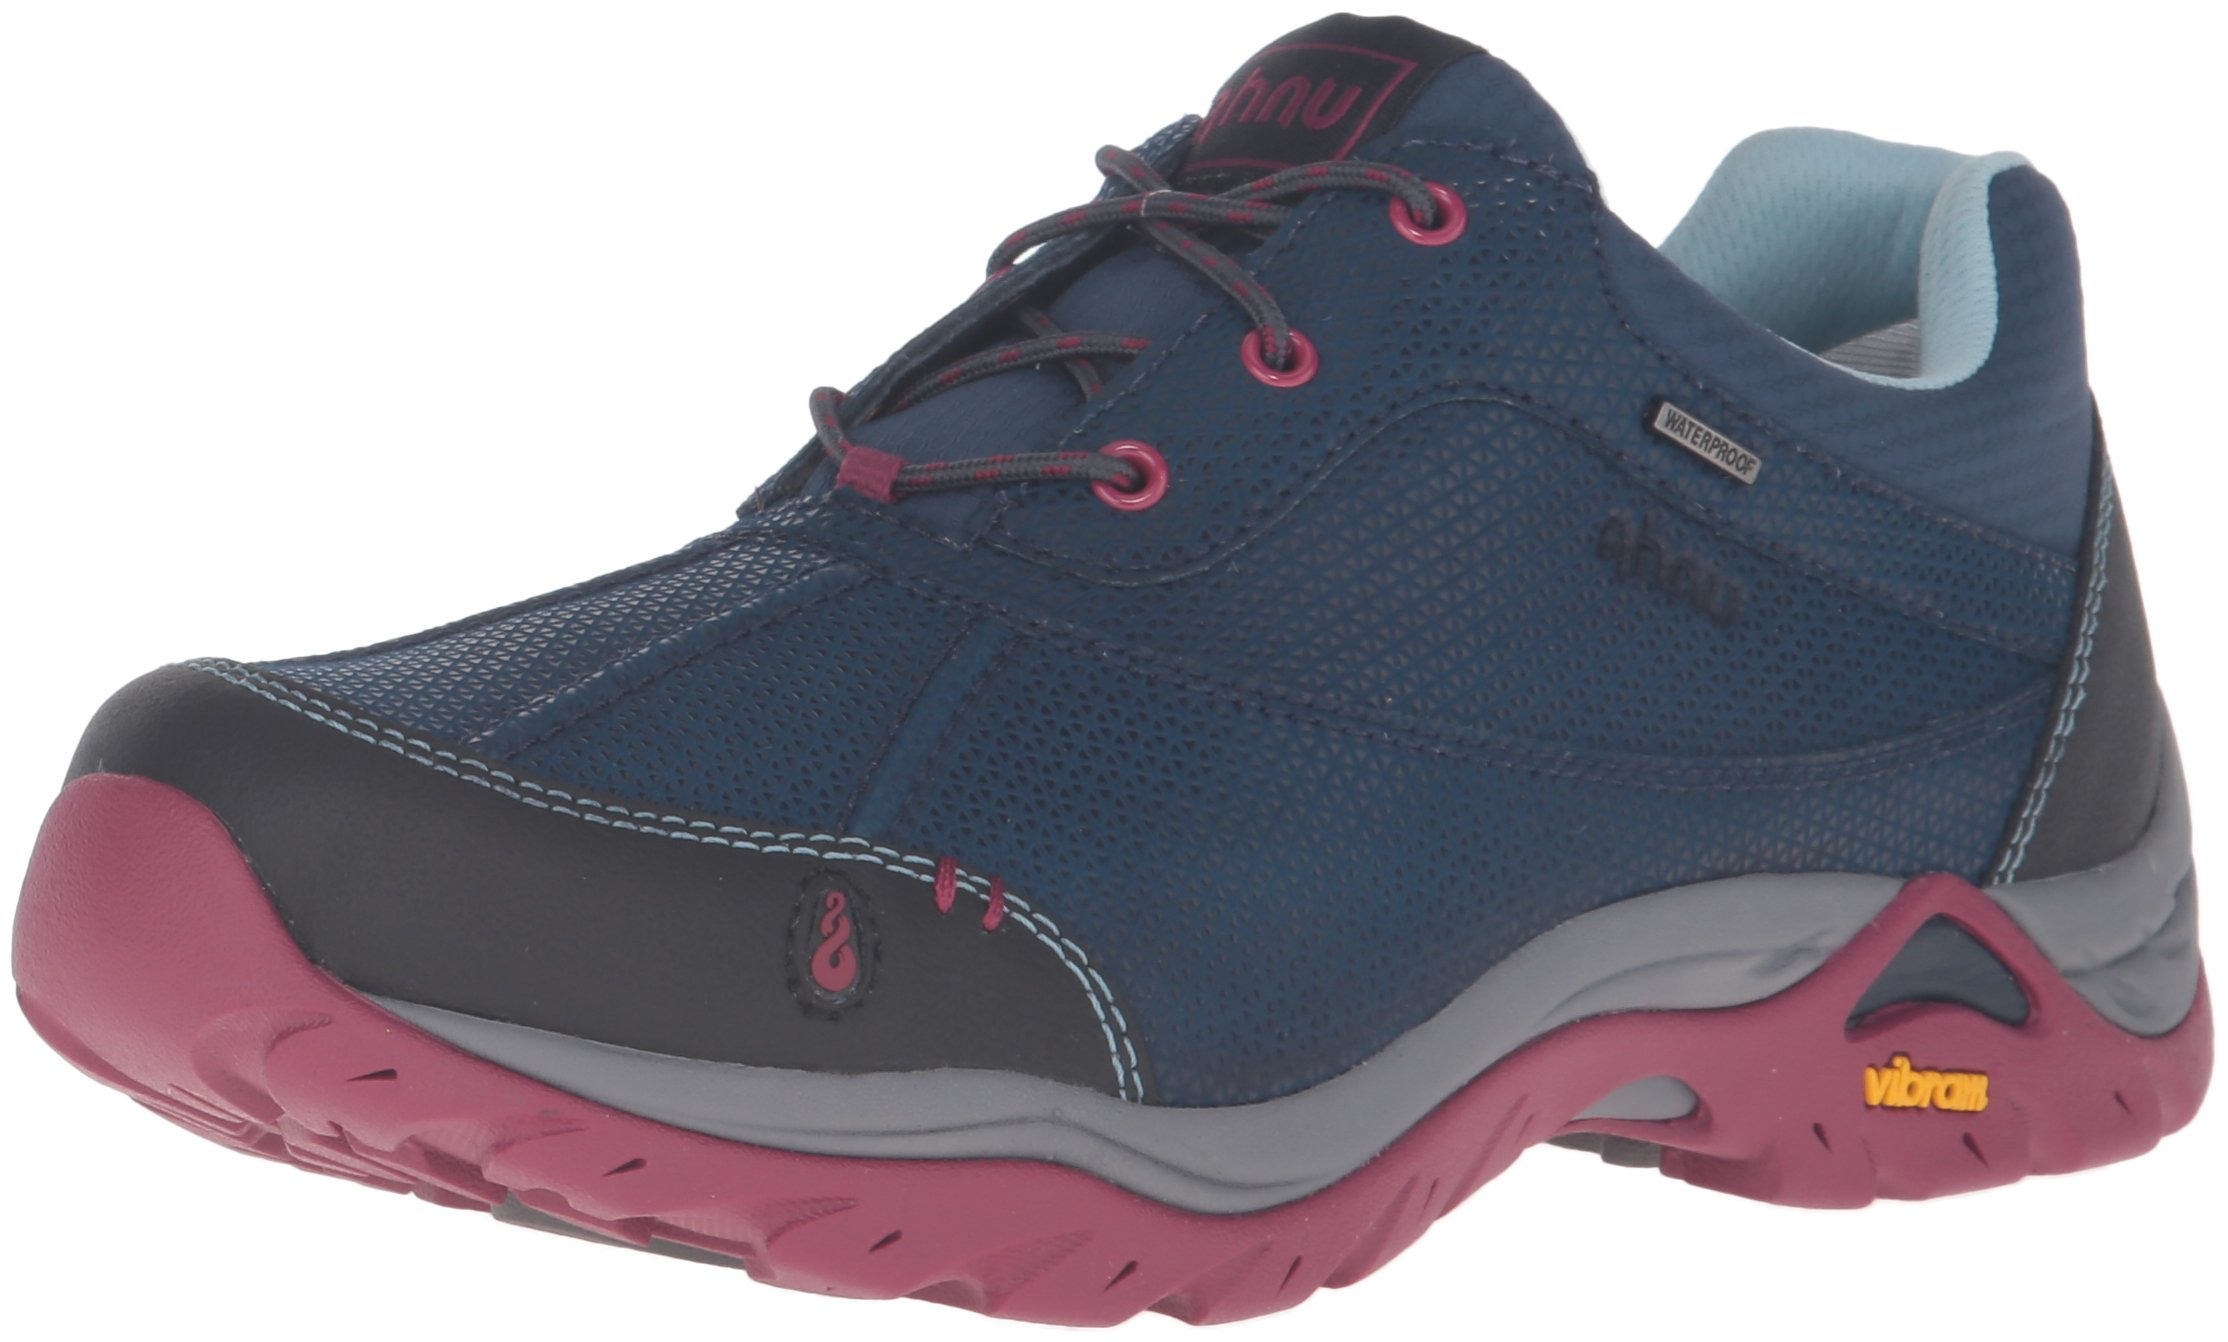 Ahnu Women's Calaveras Waterproof Hiking Shoe, Blue Spell, 9.5 M US